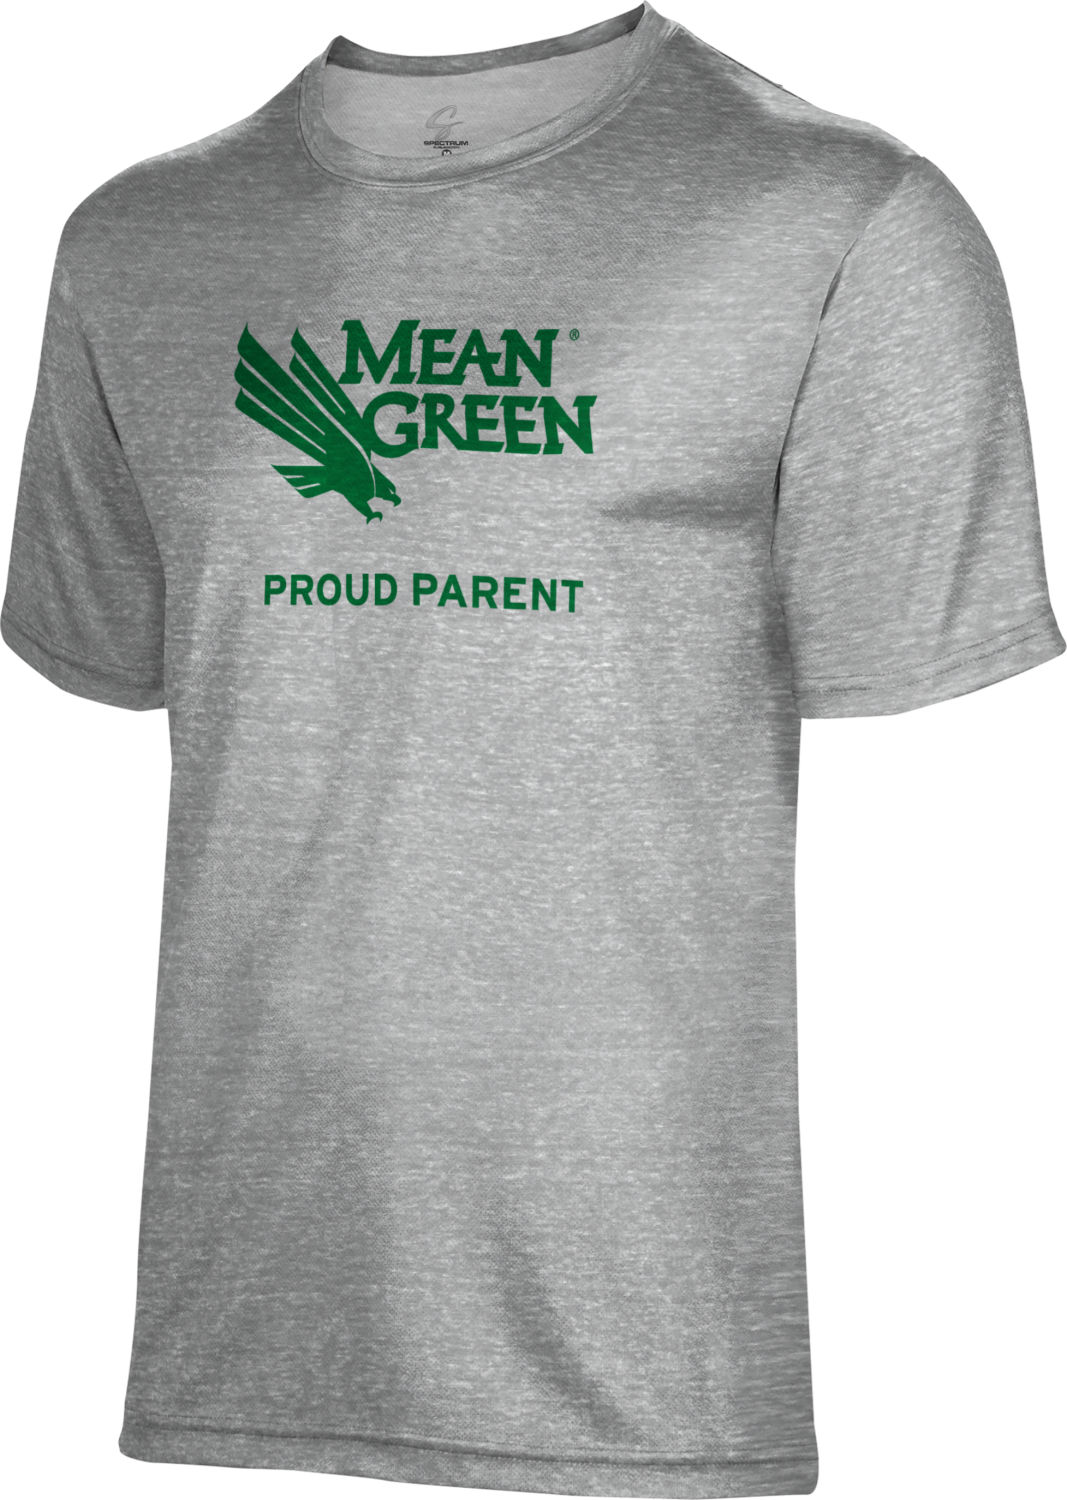 Spectrum Proud Parent Unisex 50/50 Distressed Short Sleeve Tee